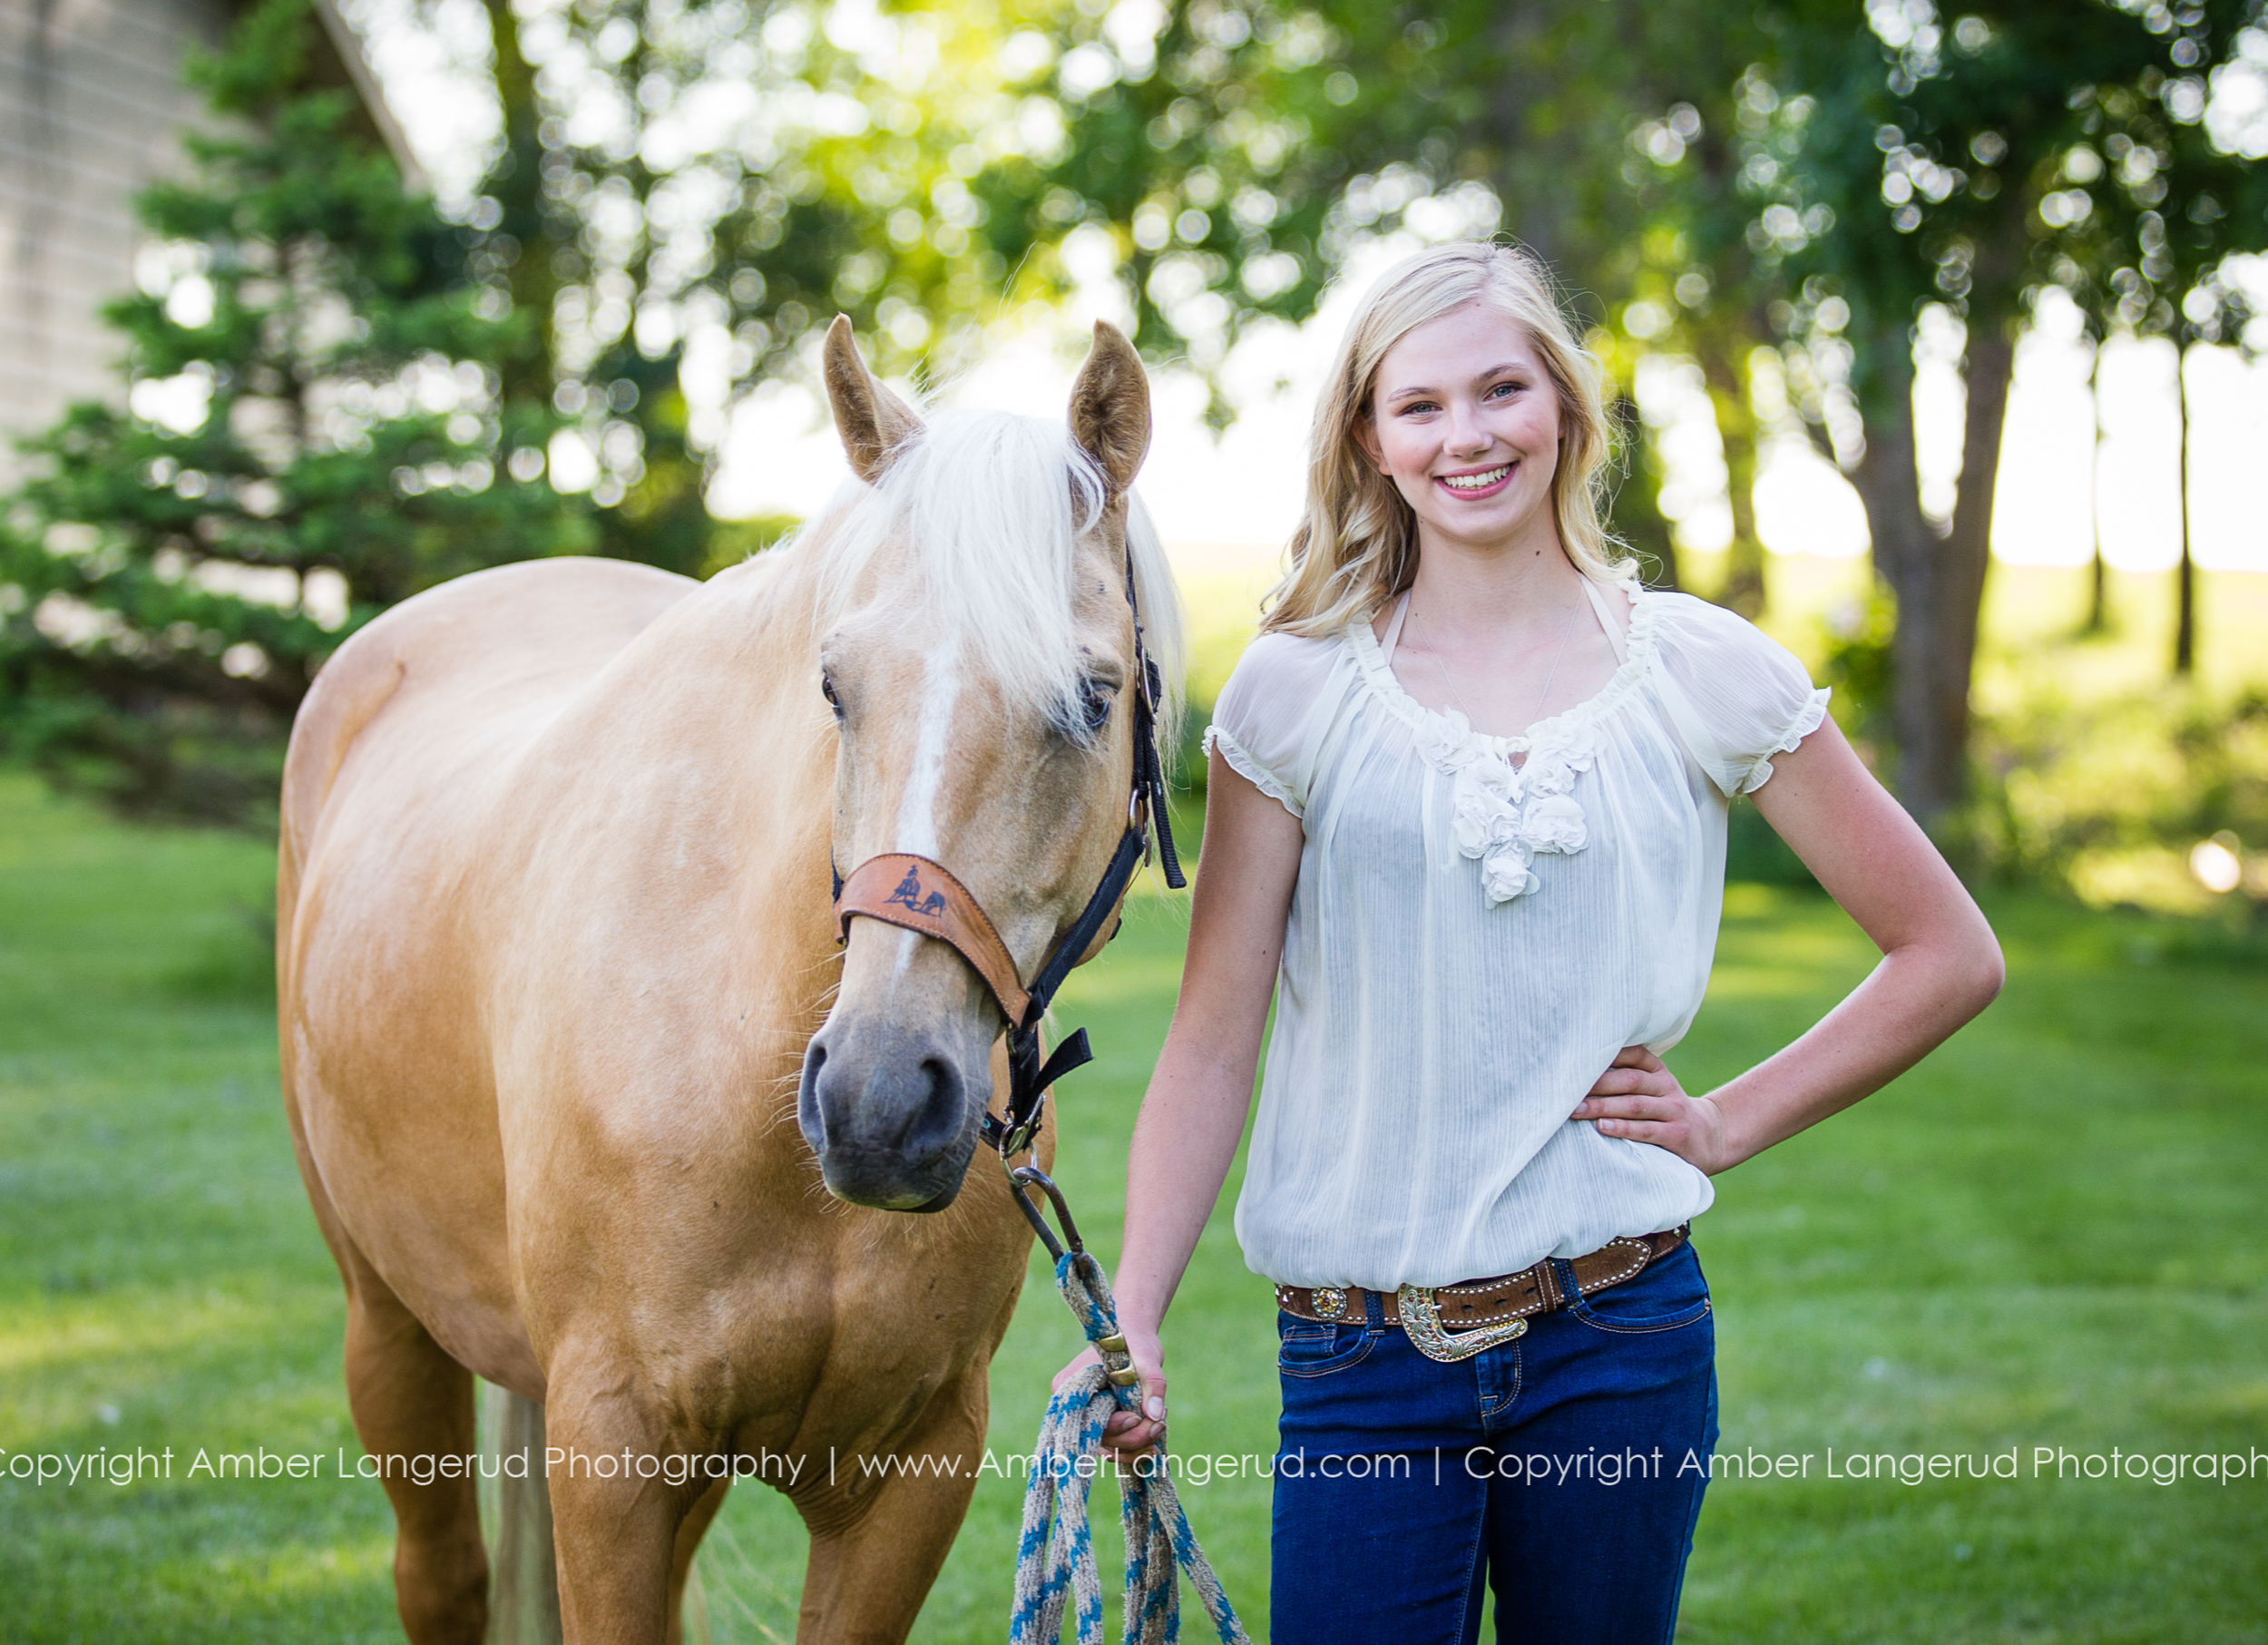 A Country Girl and Her Horse | Detroit Lakes Area High School Senior Photographer